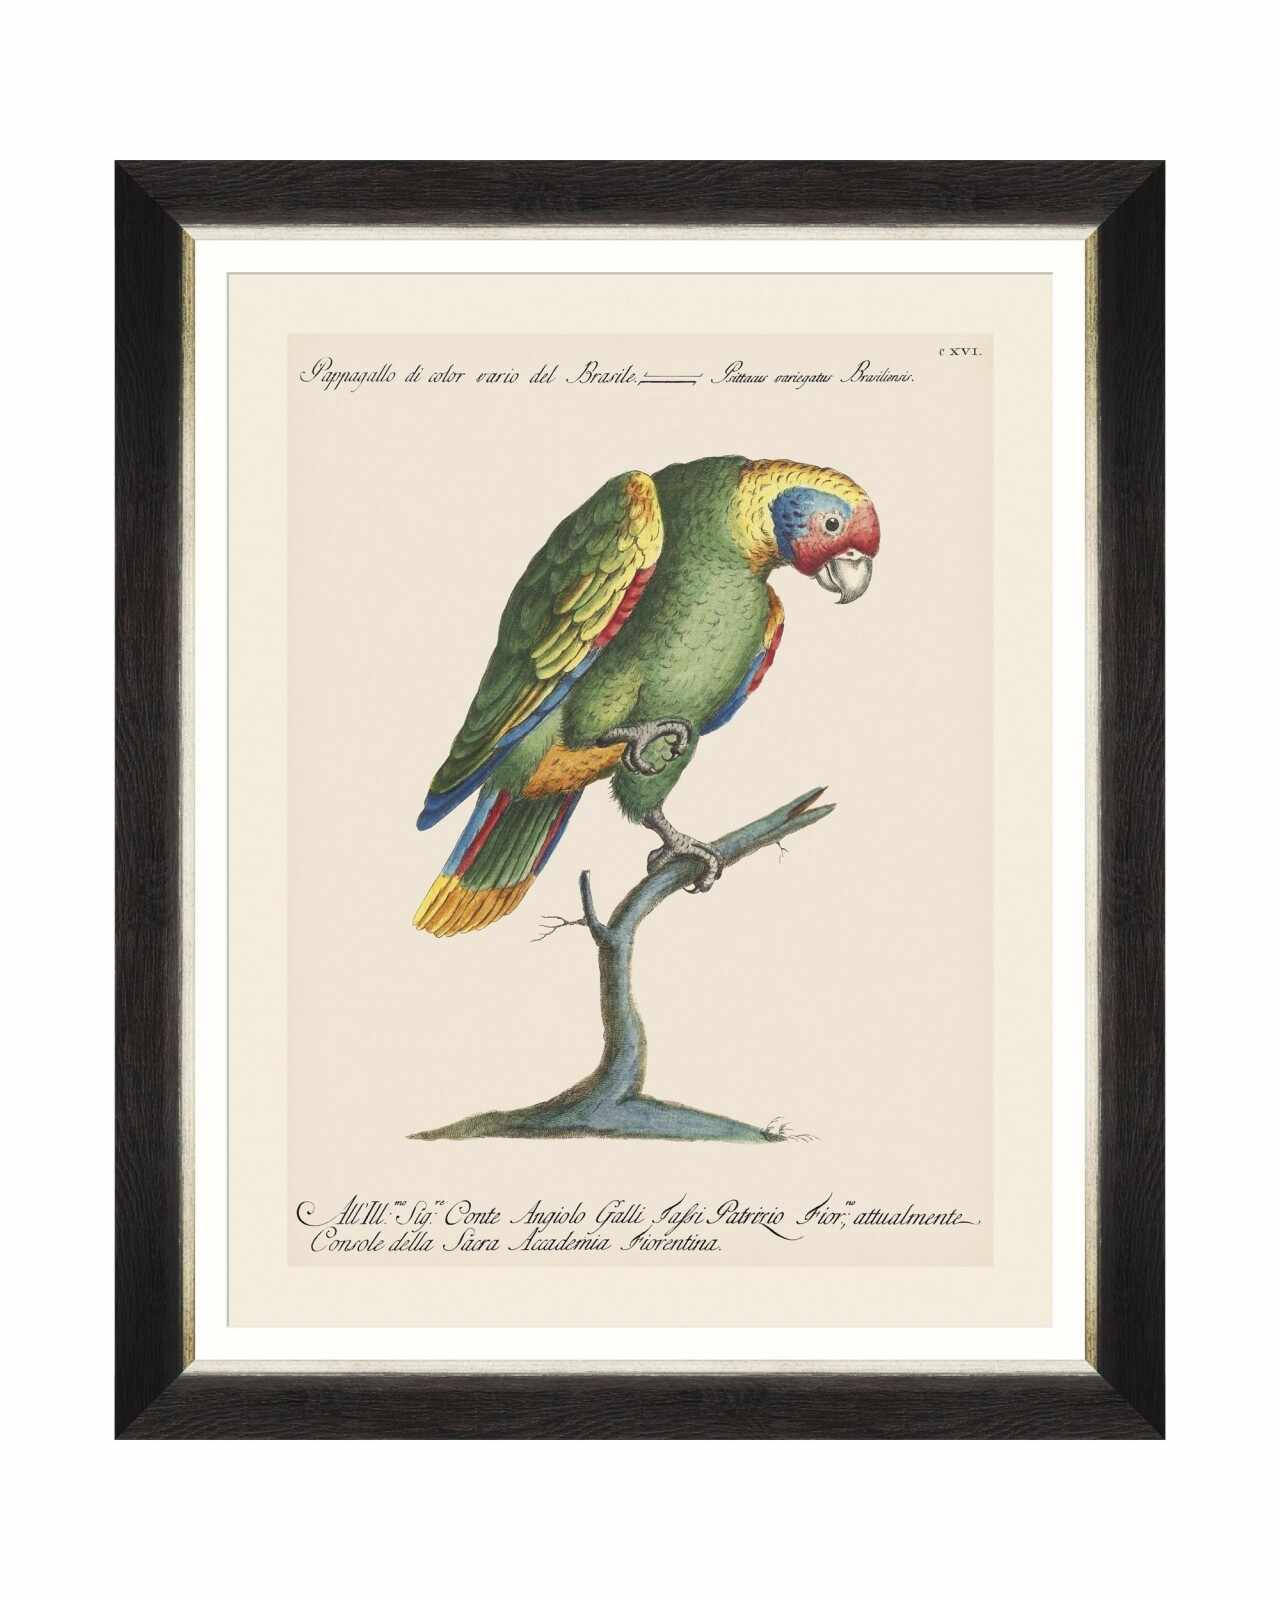 Tablou Framed Art Parrots Of Brasil IX, 40 x 50 cm